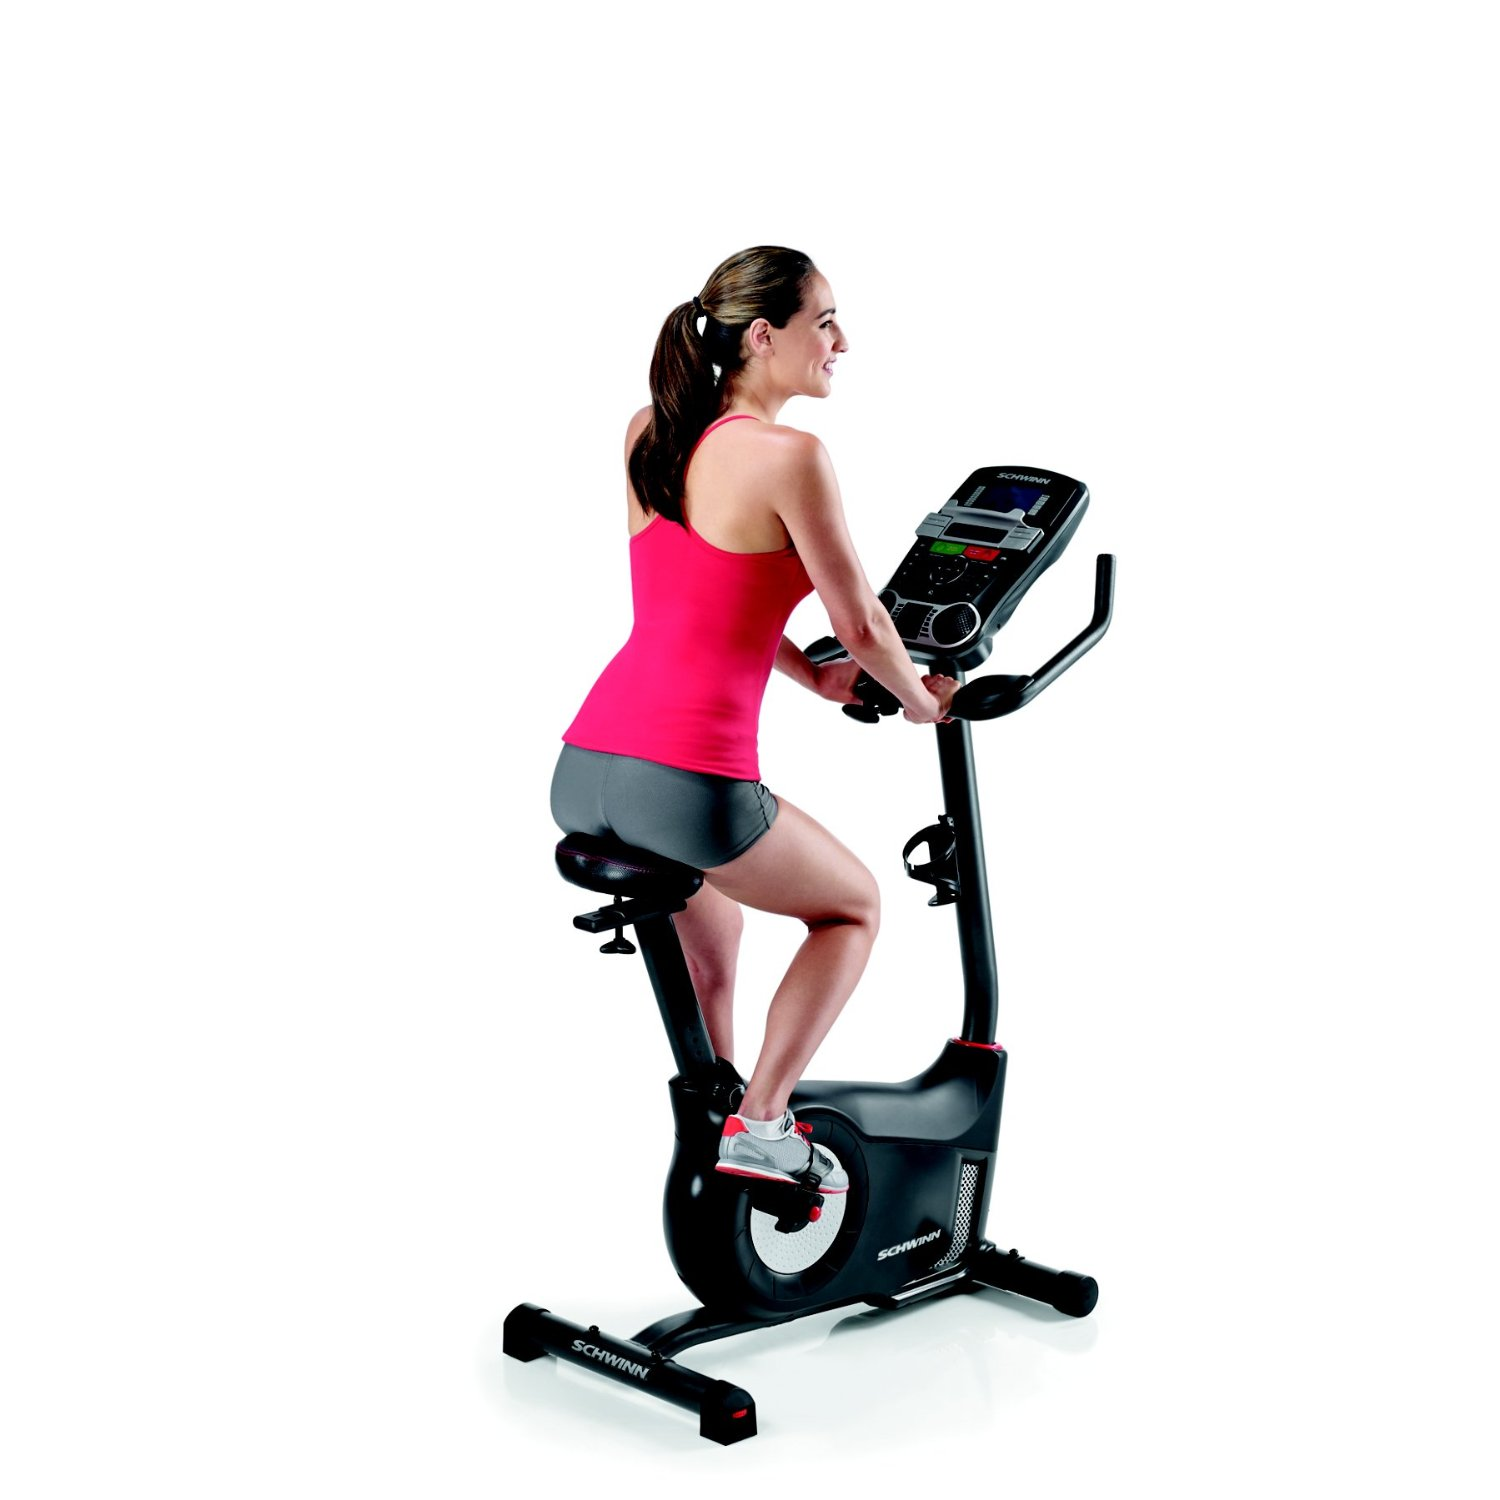 Schwinn 170 Upright Bike Review A Good Buy For You